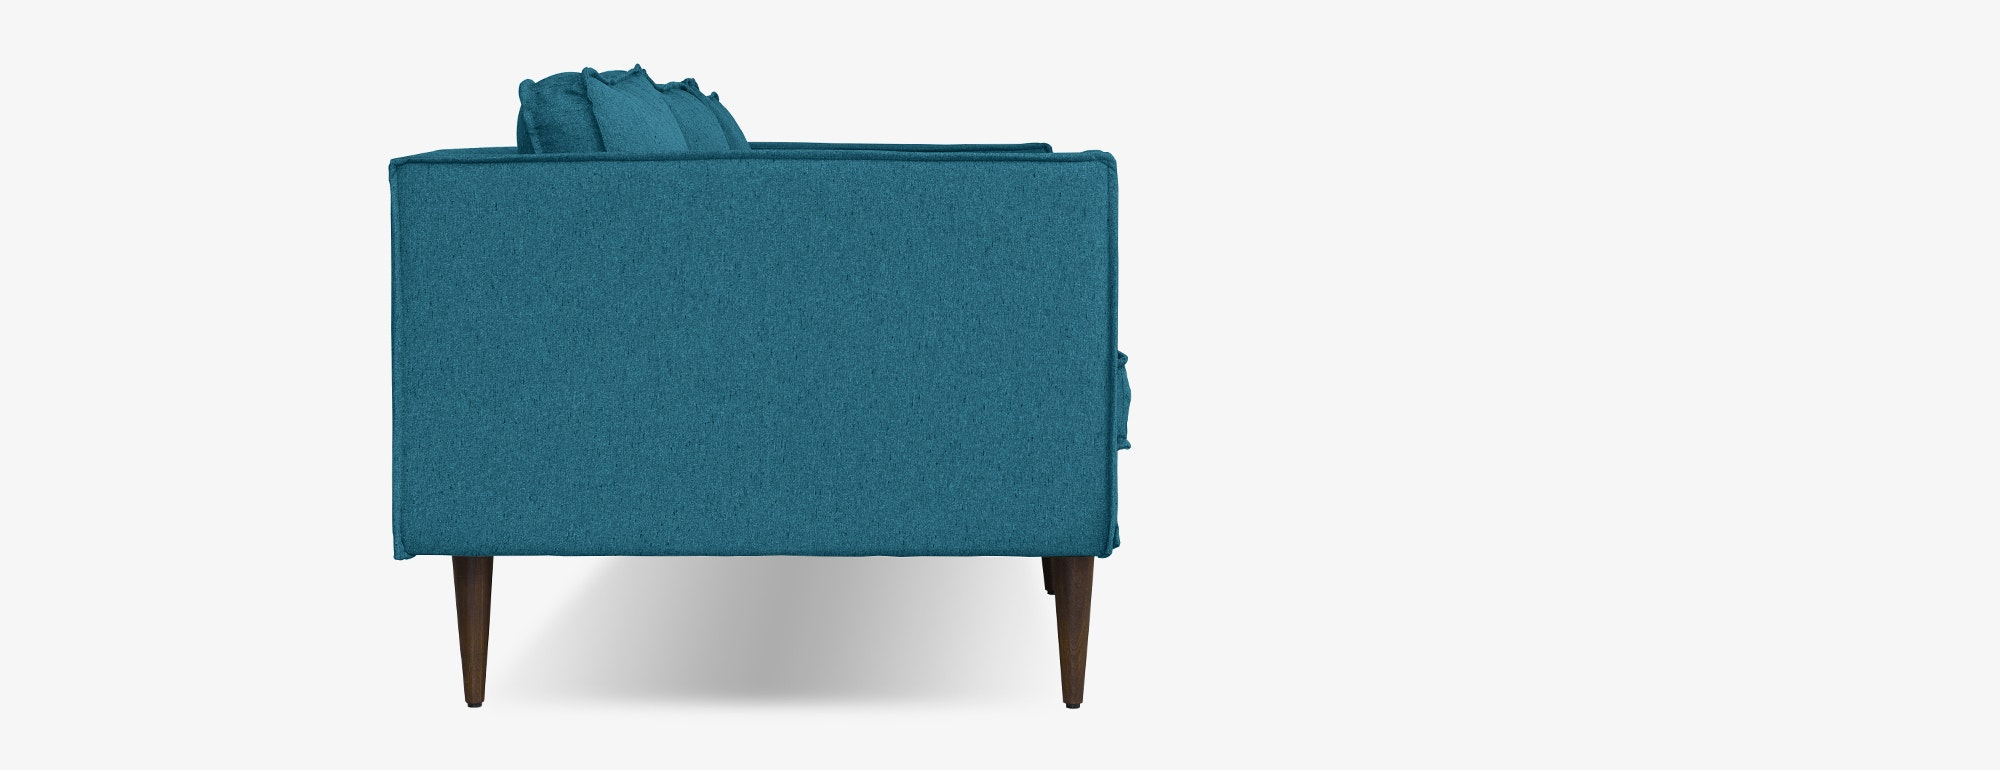 shown in Essence Turquoise Fabric